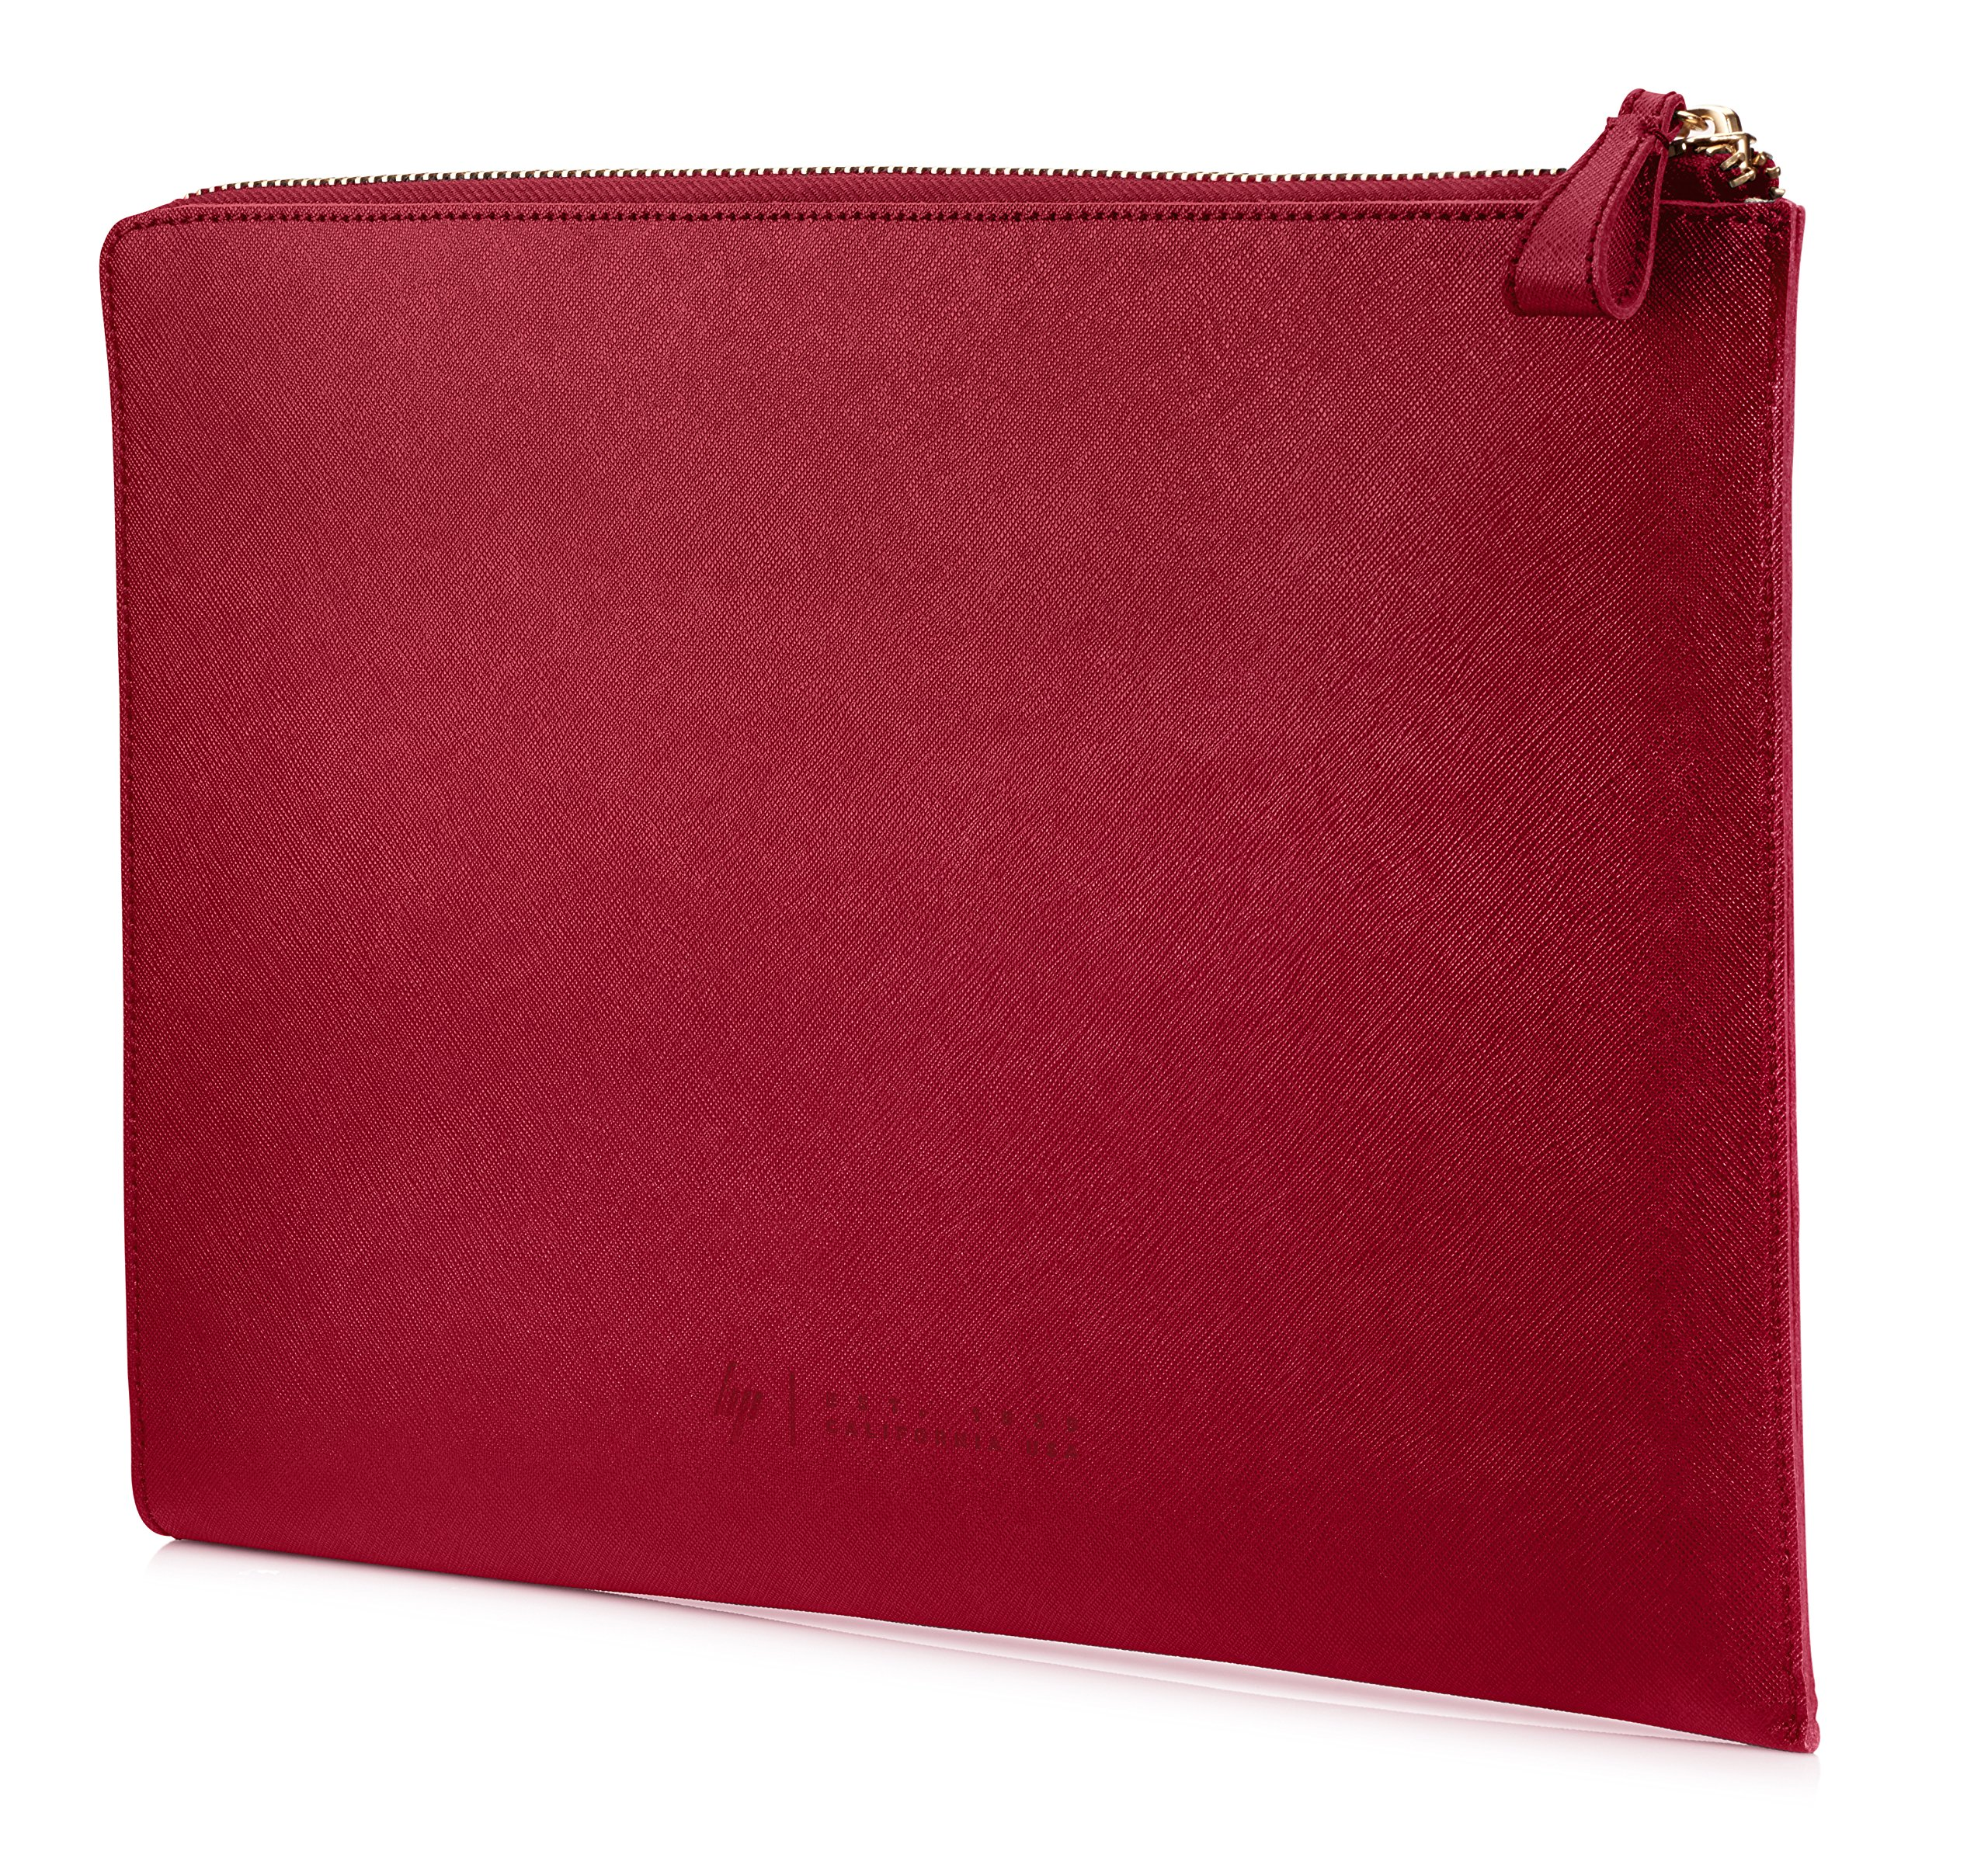 HP Spectre 13-inch Laptop Leather Sleeve (Red with Copper-finished Hardware)